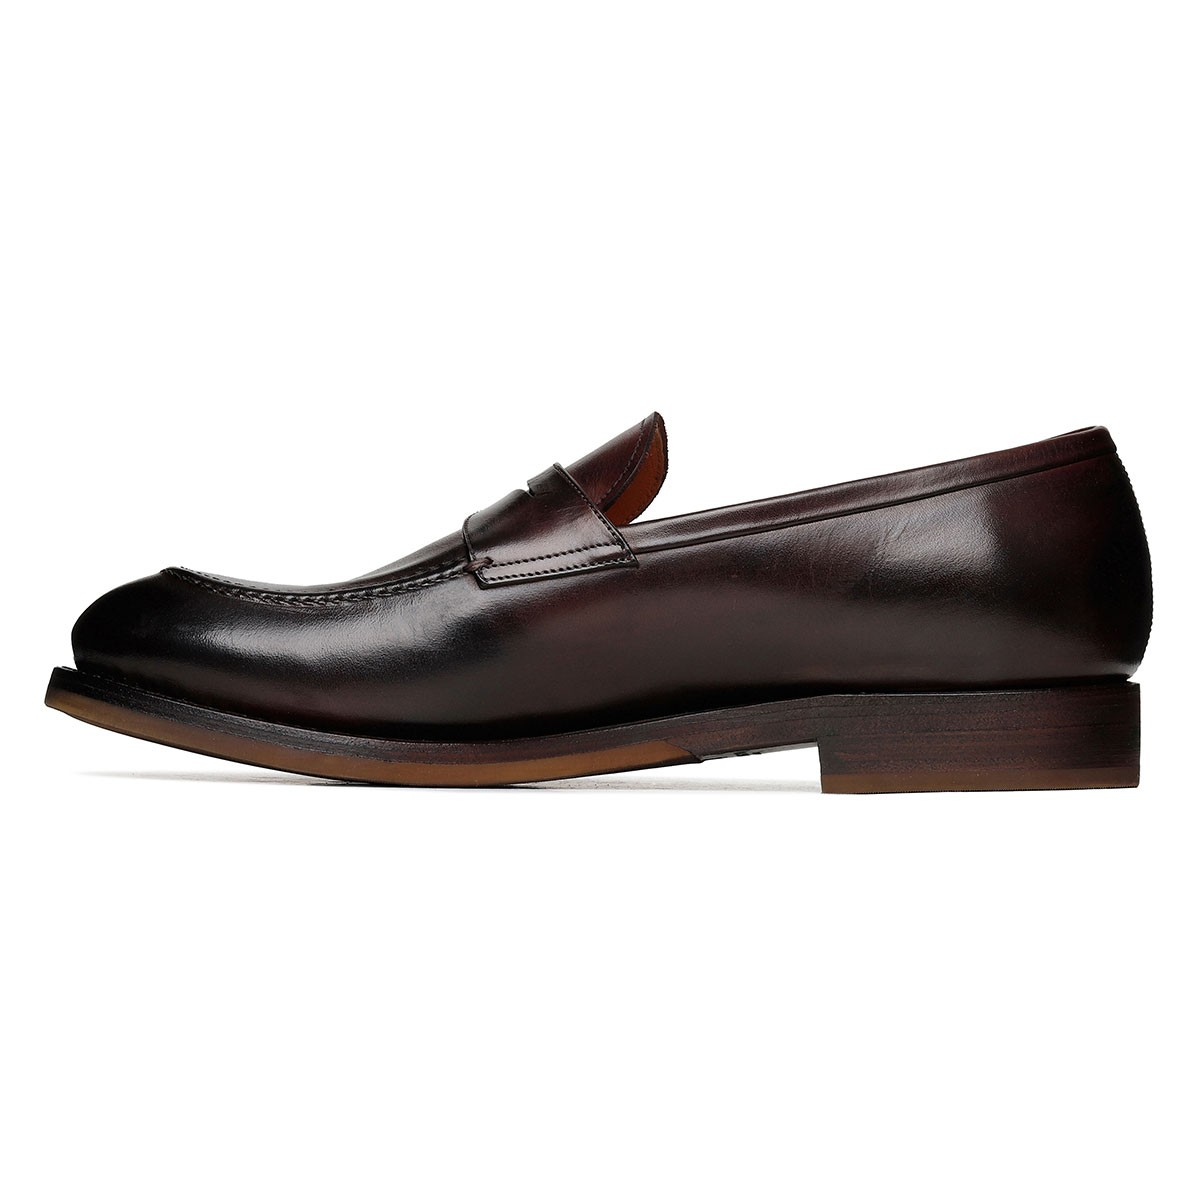 Bologna dark brown leather loafers